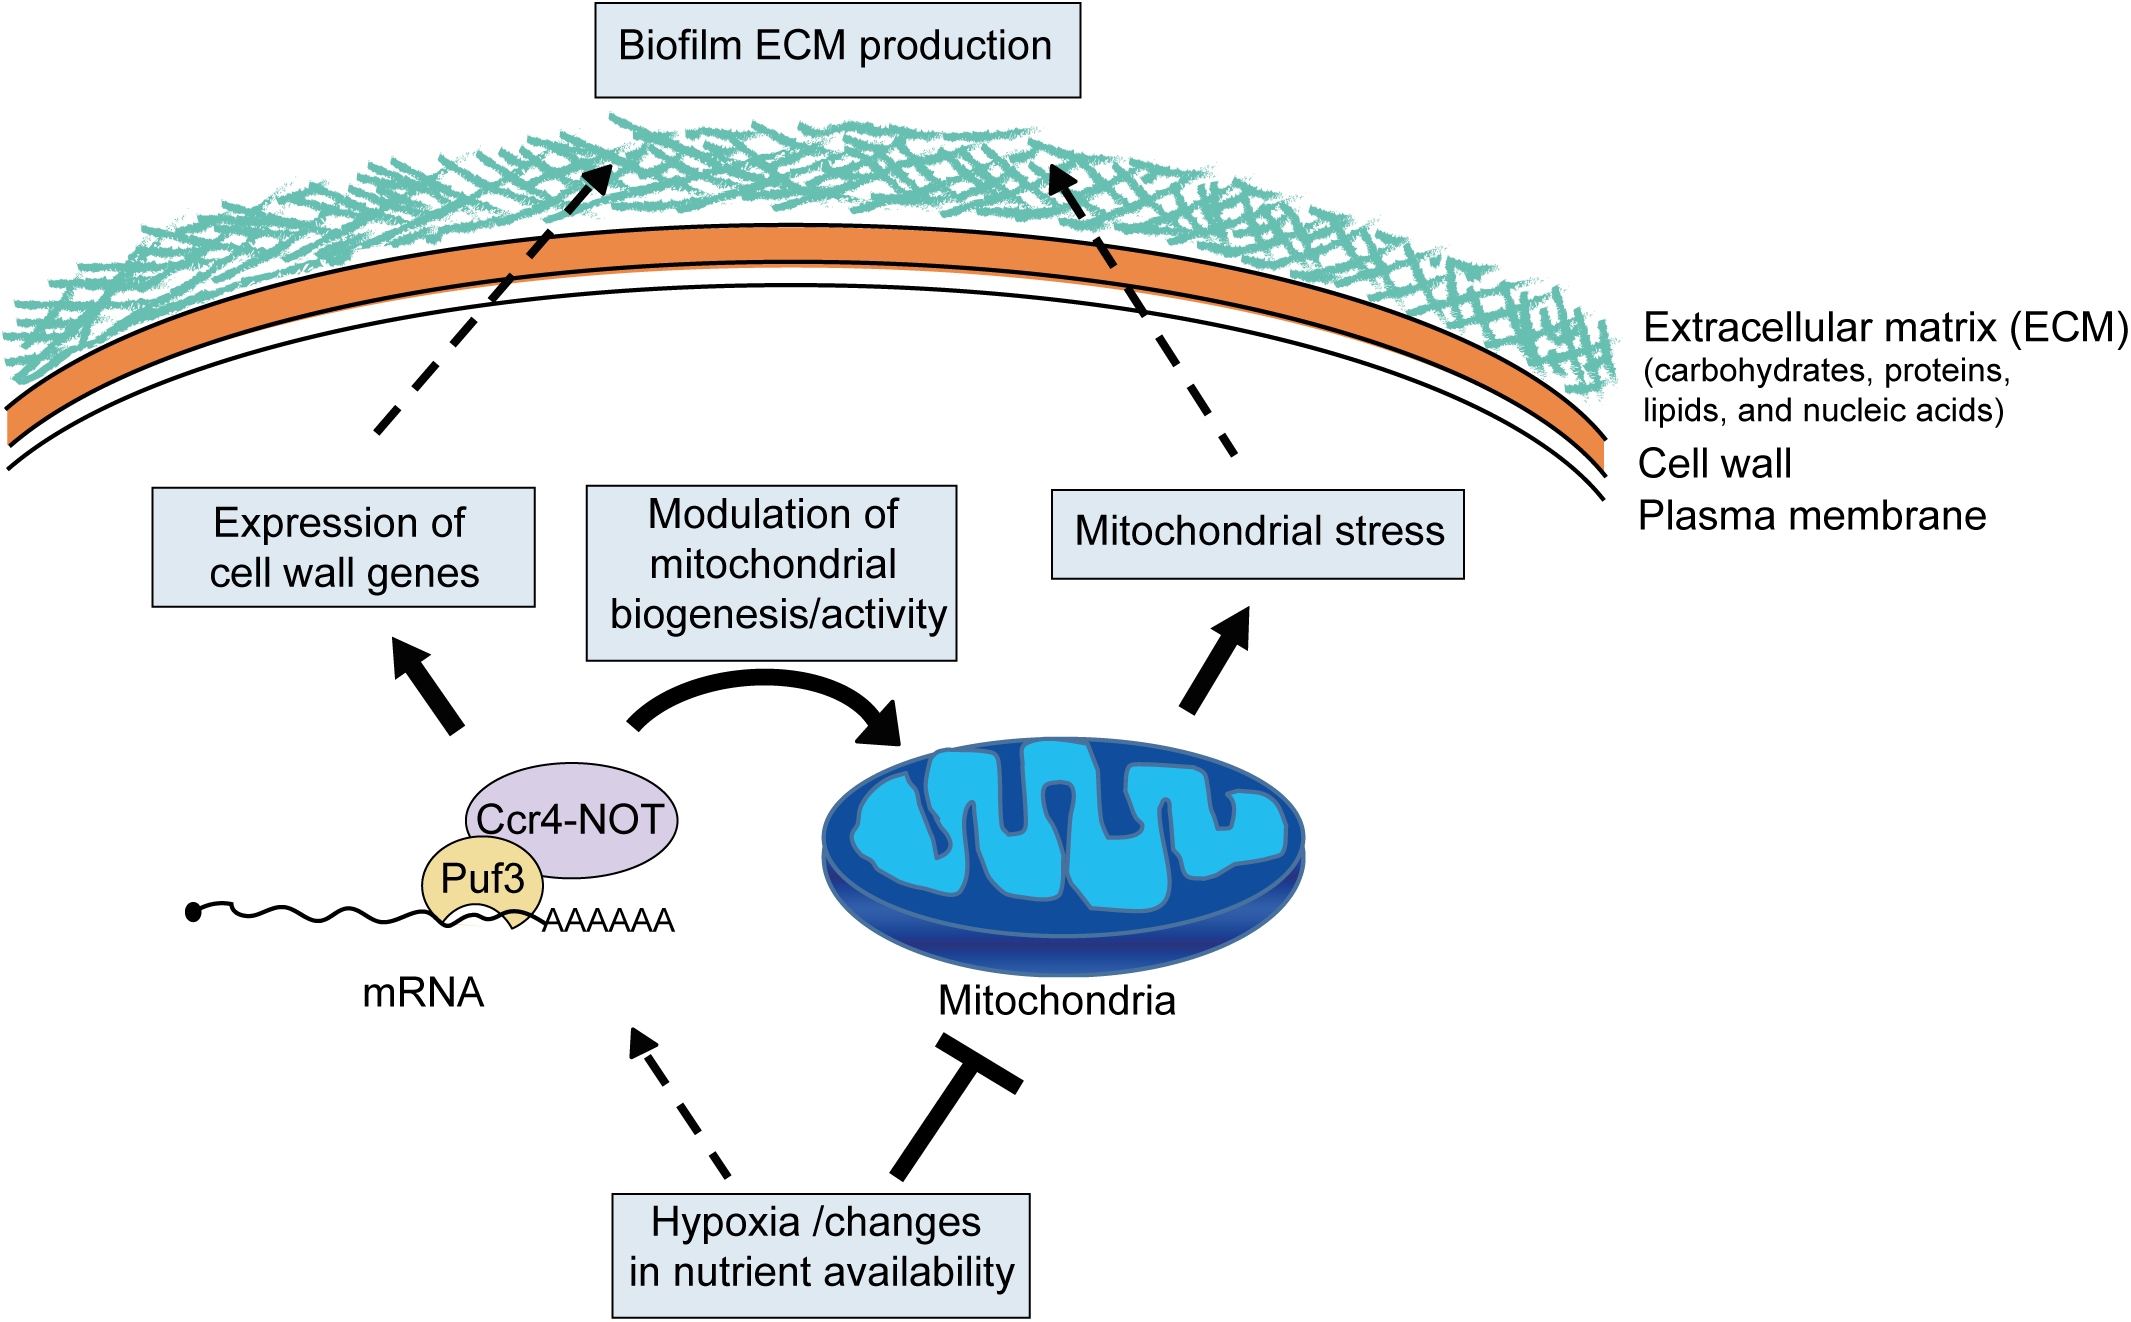 Model for the role of posttranscriptional gene regulation and mitochondrial activity in biofilm matrix production and stress protection.